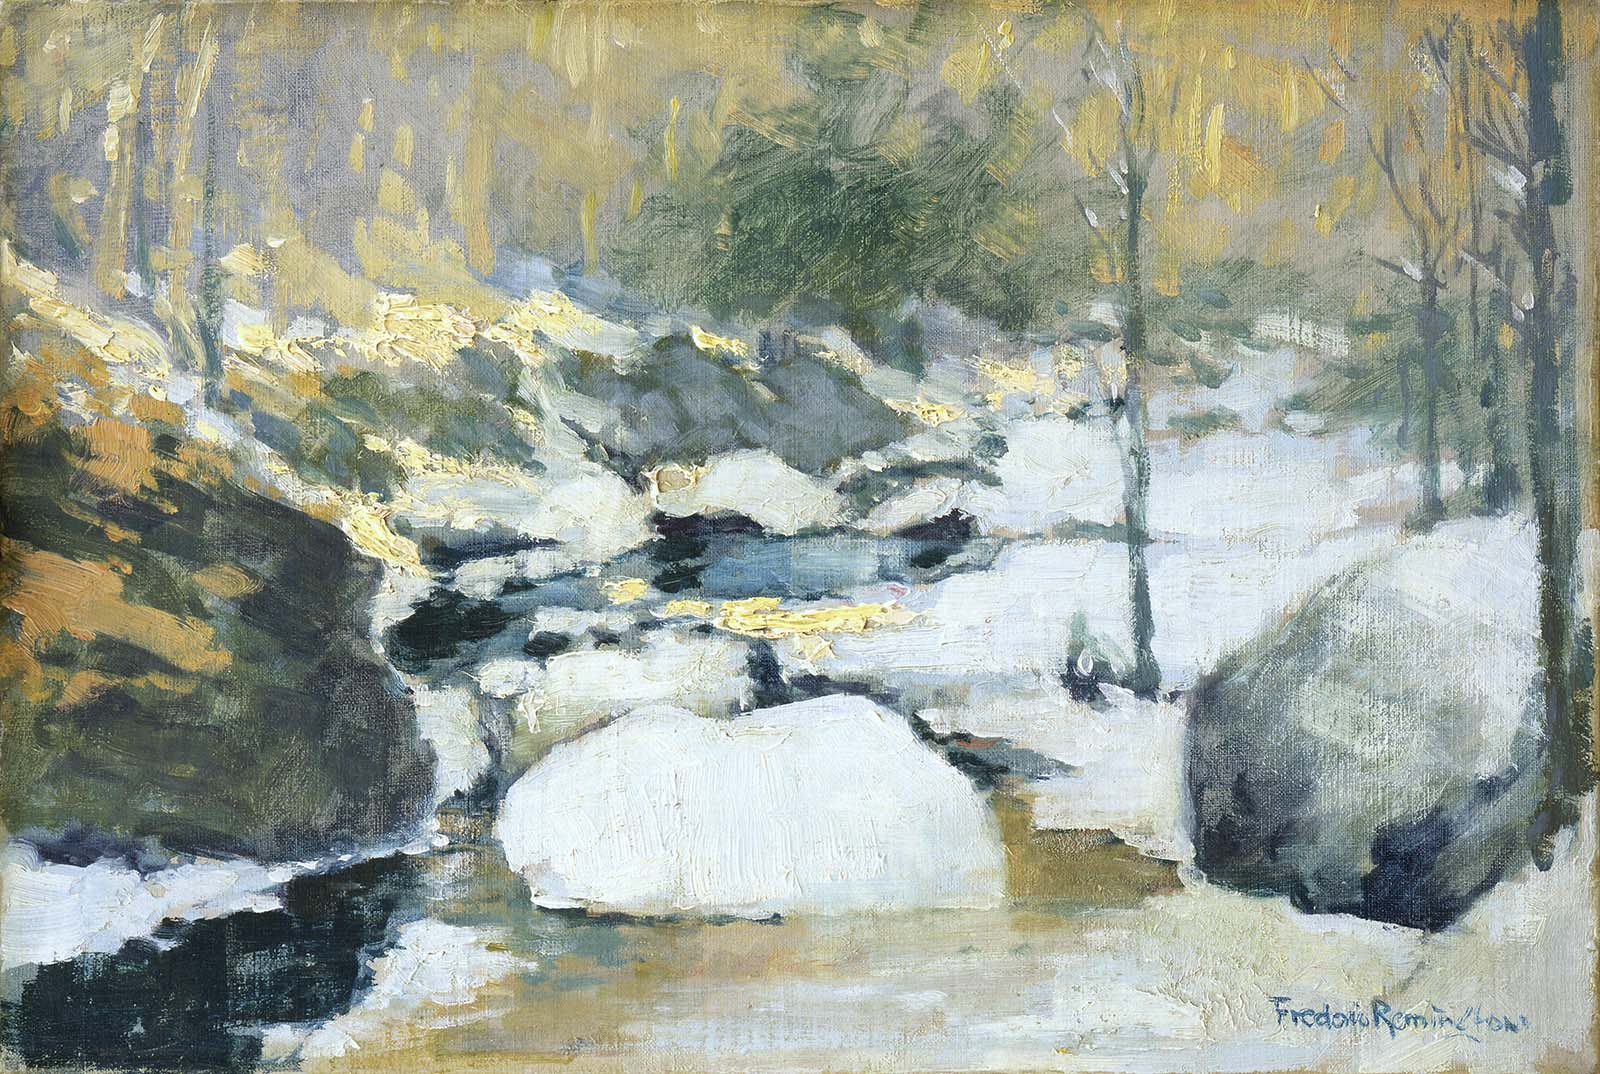 Frederic Remington (1861 - 1909). Untitled (Impressionistic winter scene of stream, rocks, and trees). Oil on board. Gift of The Coe Foundation. 75.67